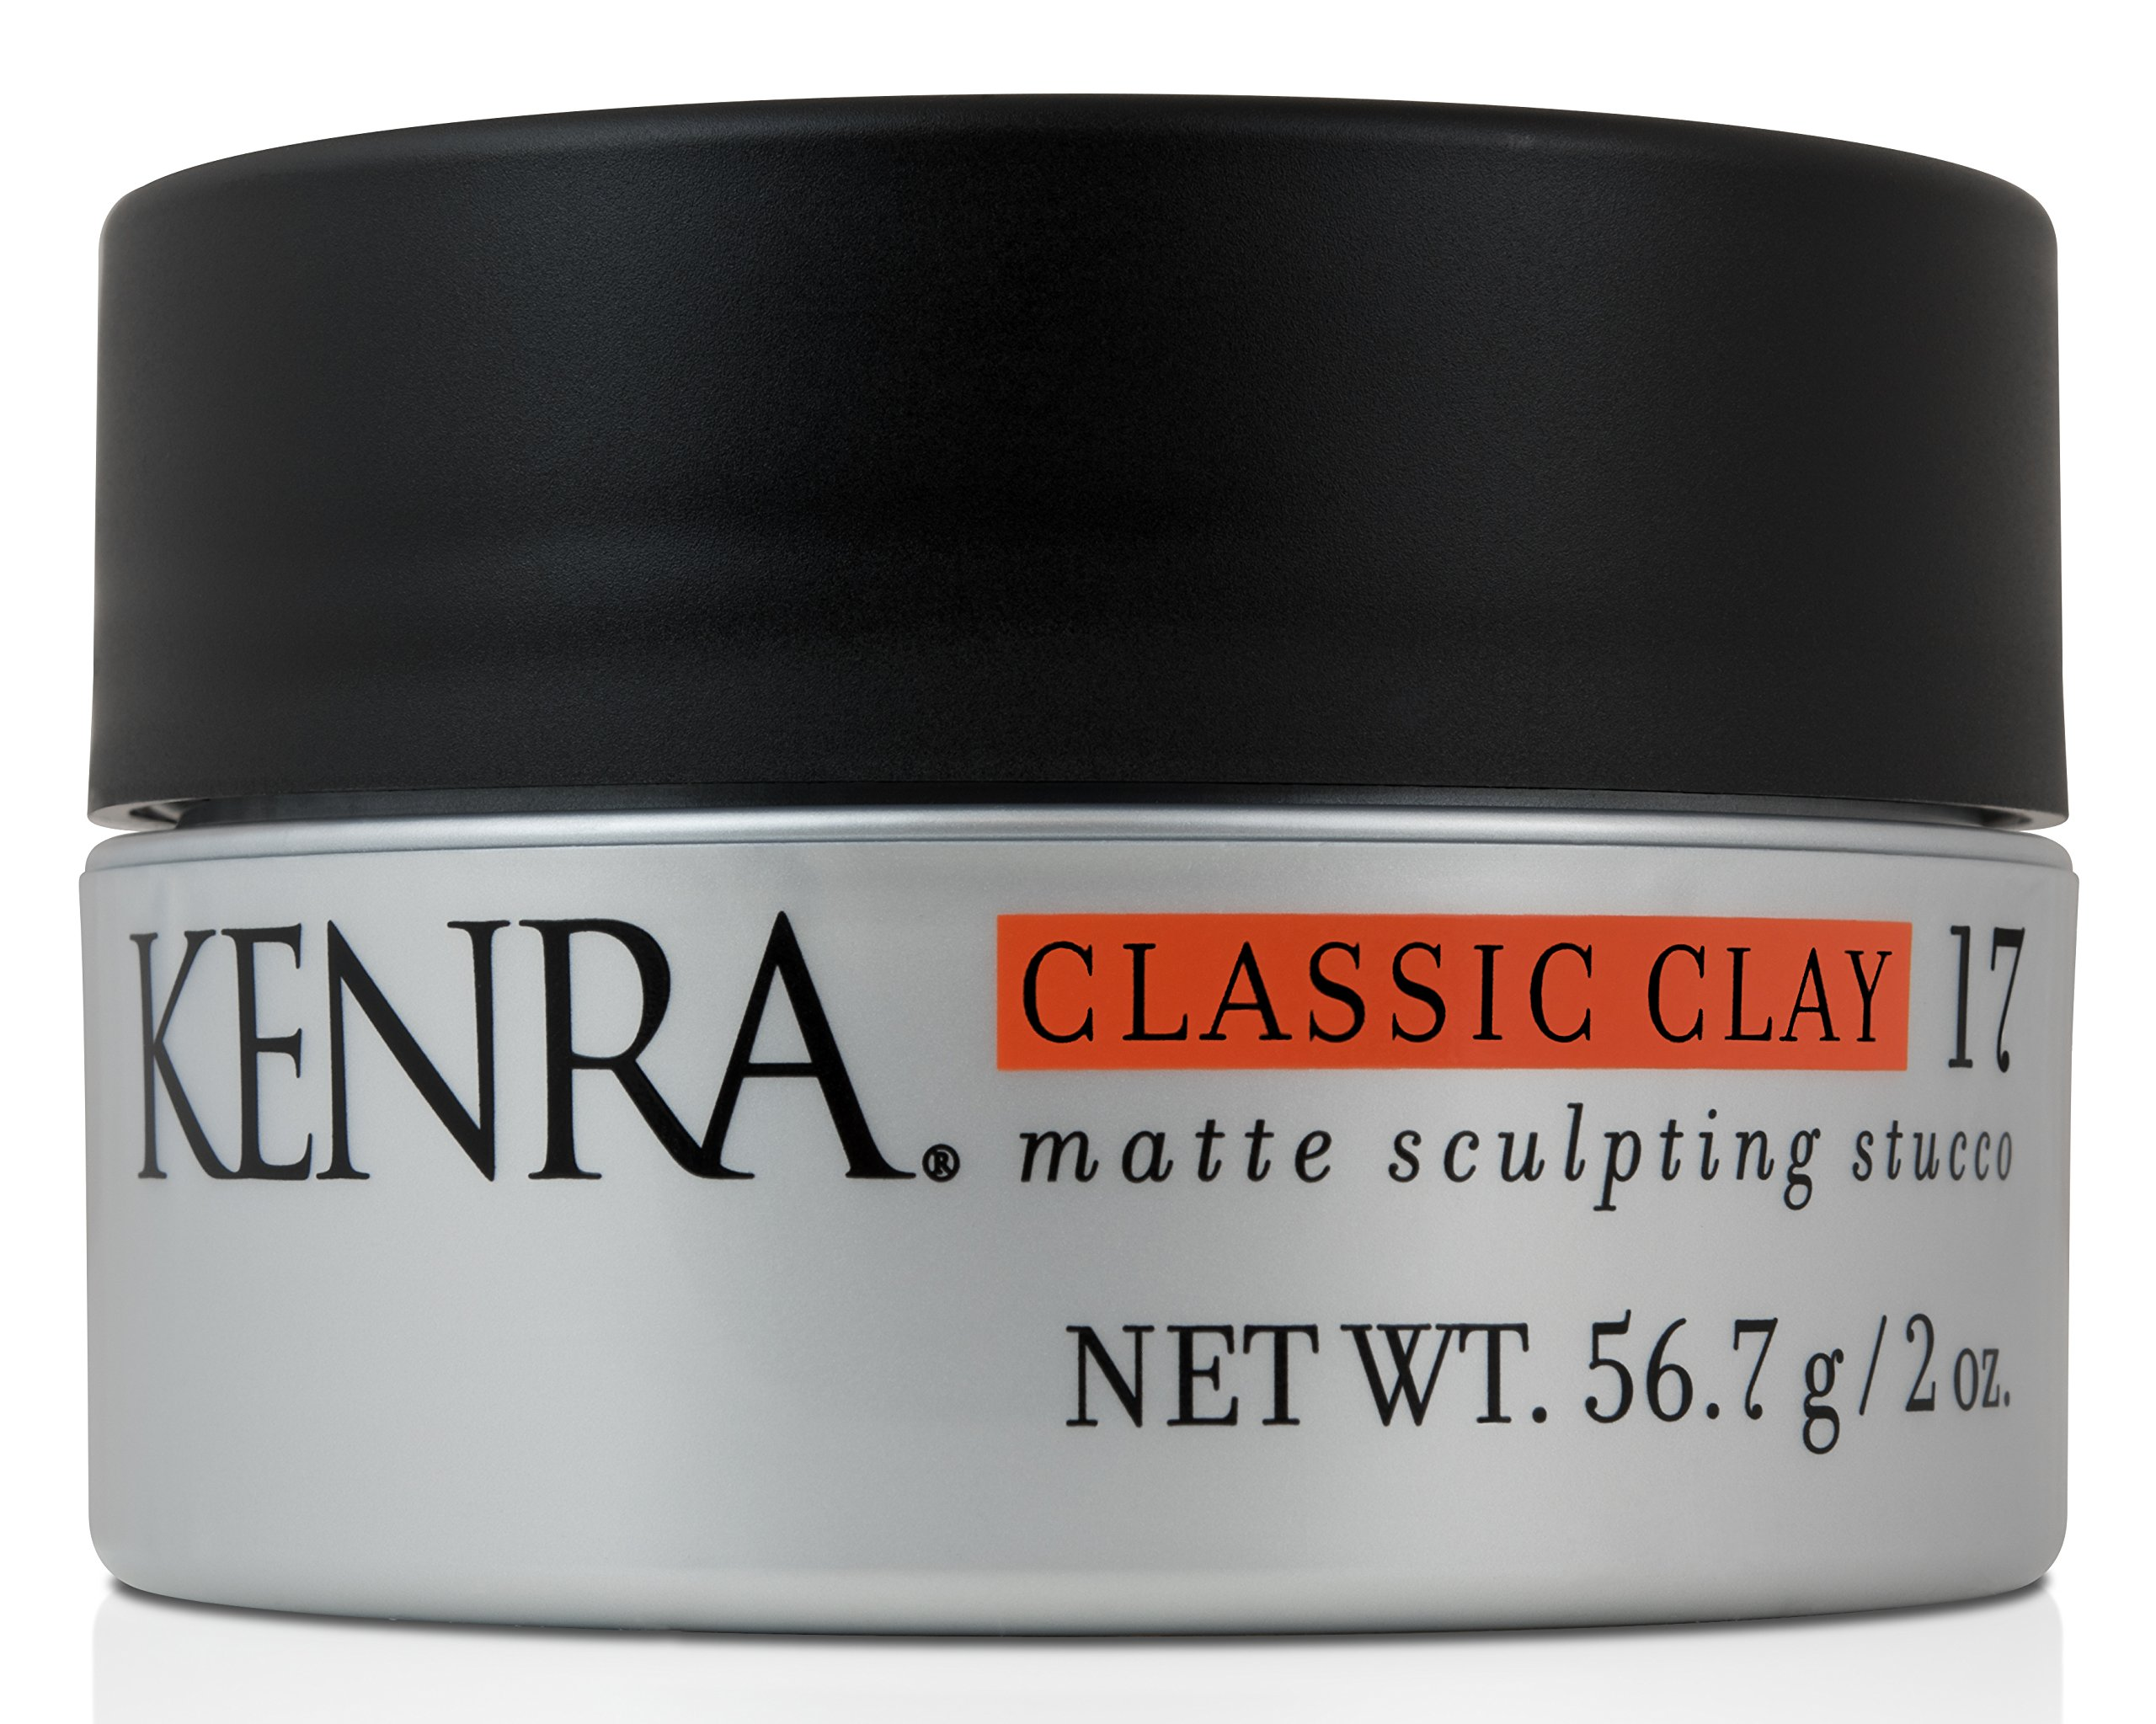 Kenra Classic Clay #17, 2-Ounce by Kenra (Image #1)